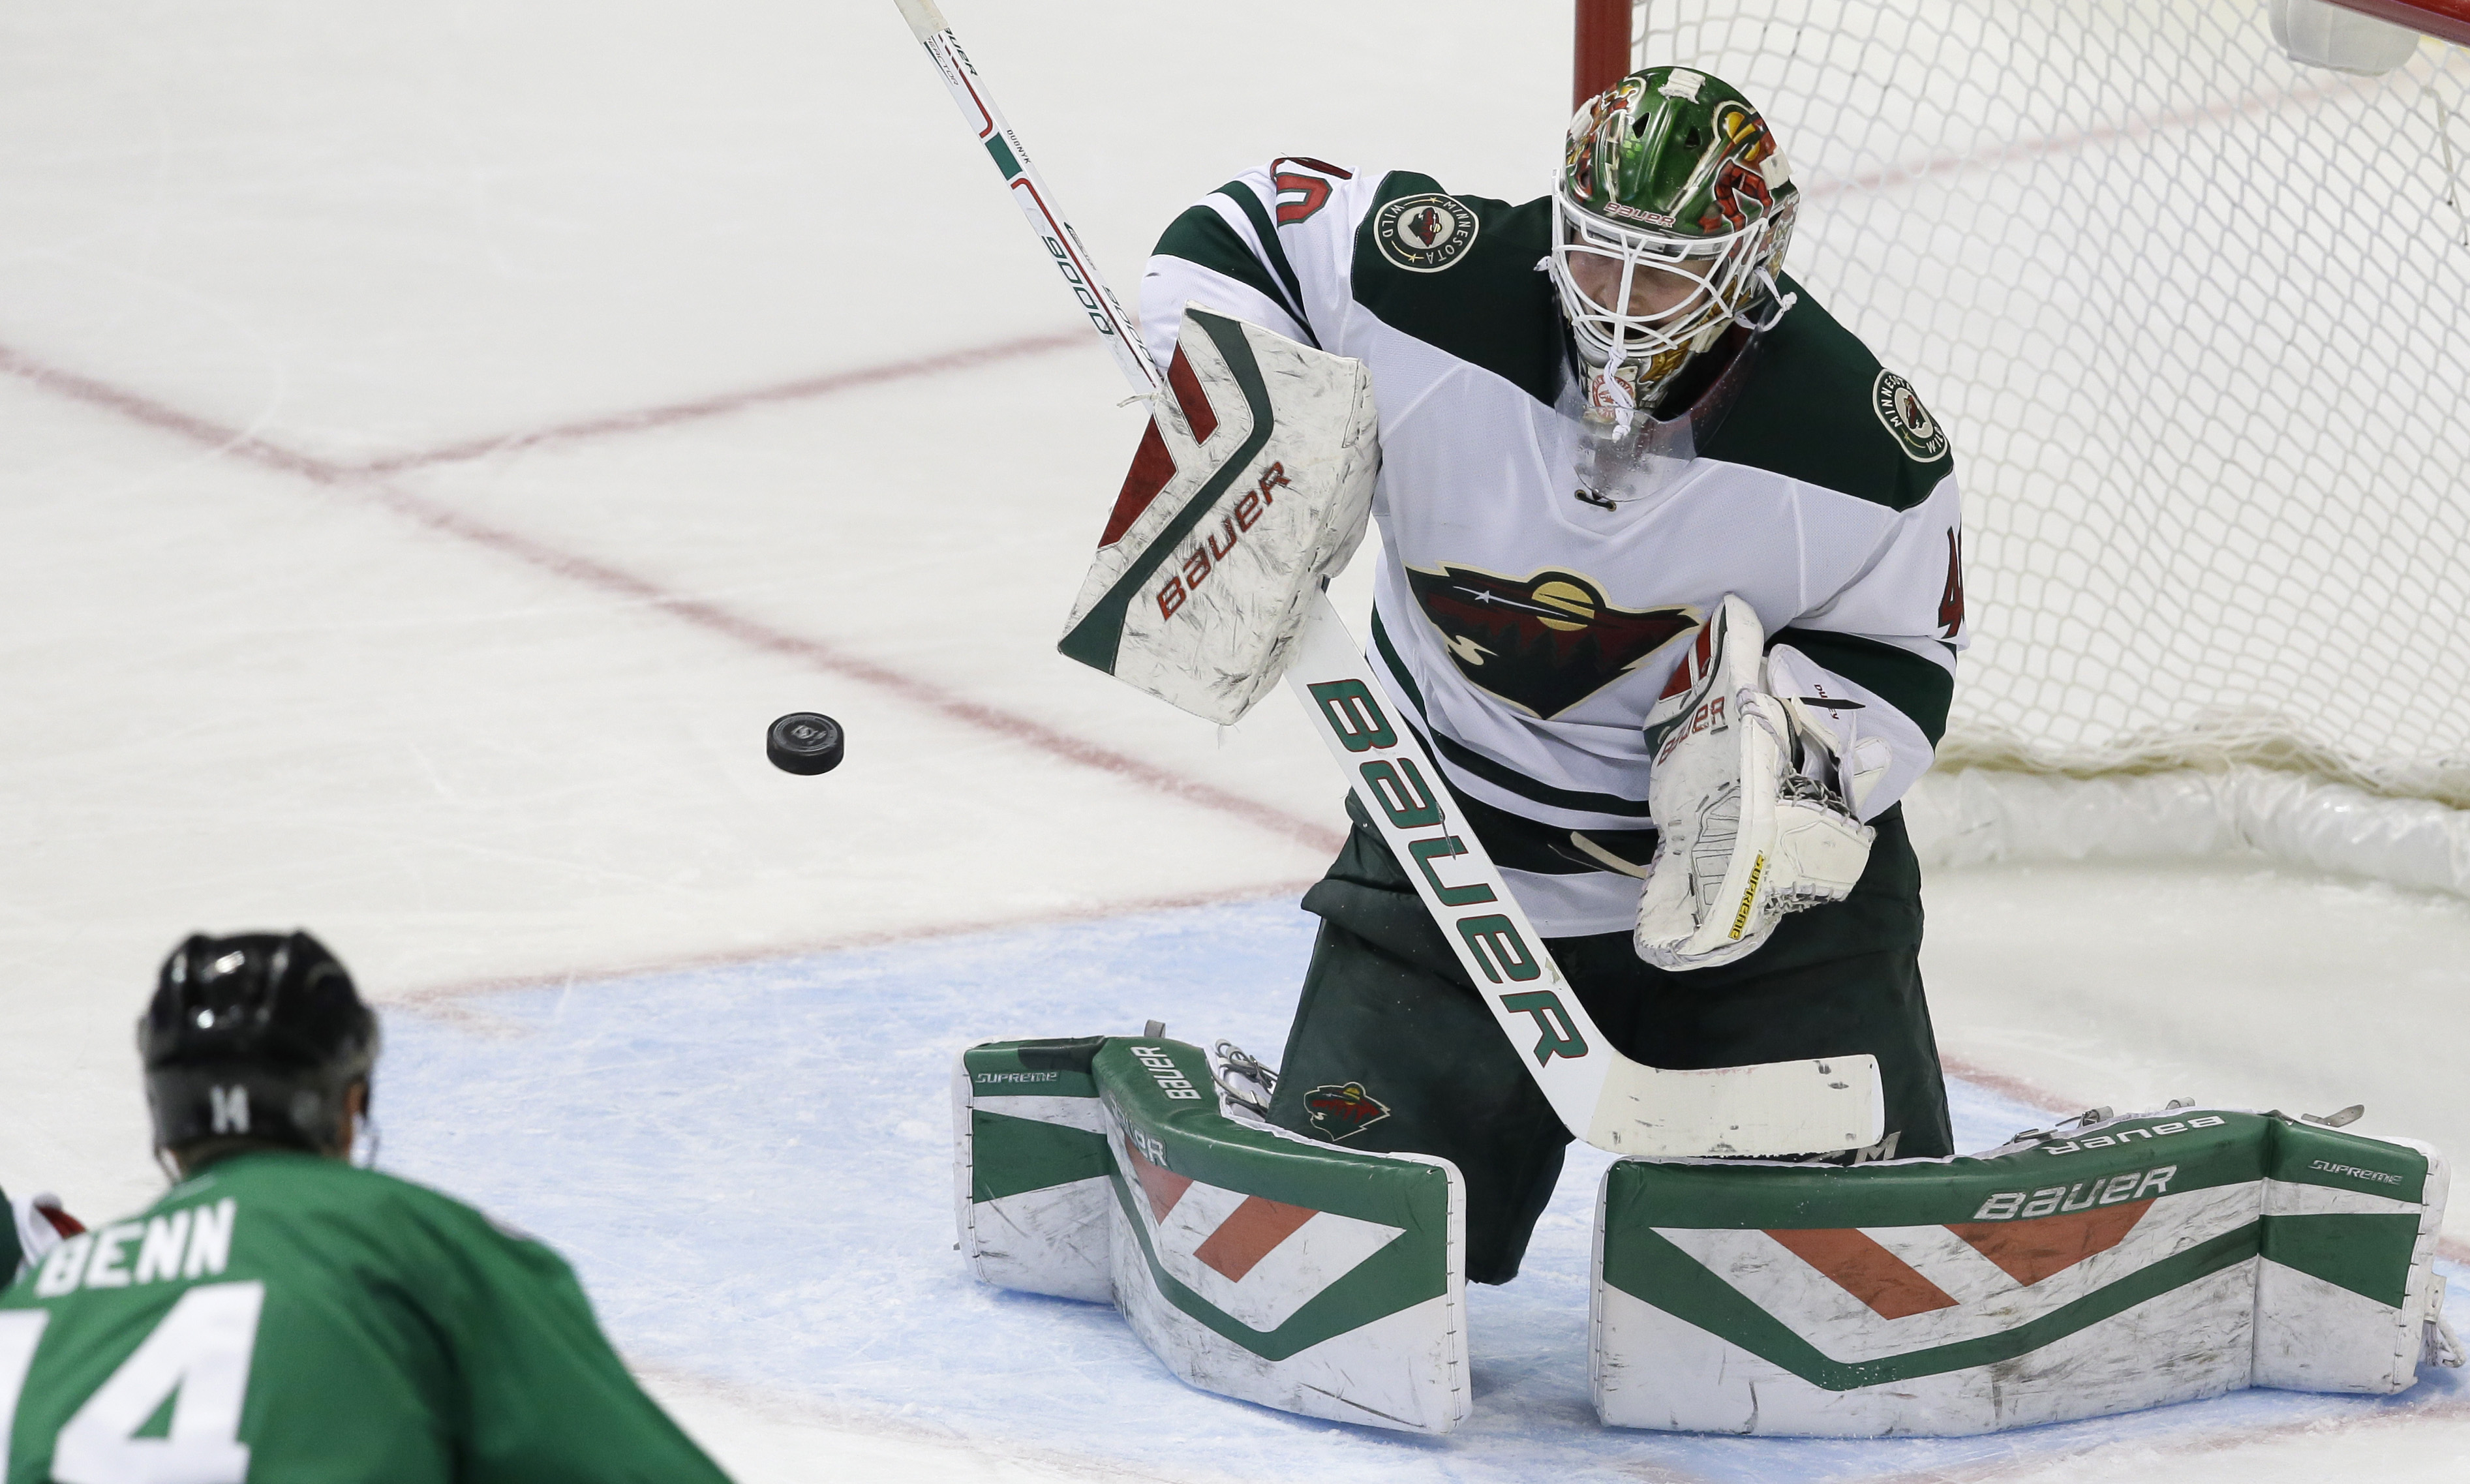 Minnesota Wild goalie Devan Dubnyk (40) defends the goal against Dallas Stars left wing Jamie Benn (14) during the second period of an NHL hockey game Saturday, Jan. 9, 2016, in Dallas. (AP Photo/LM Otero)